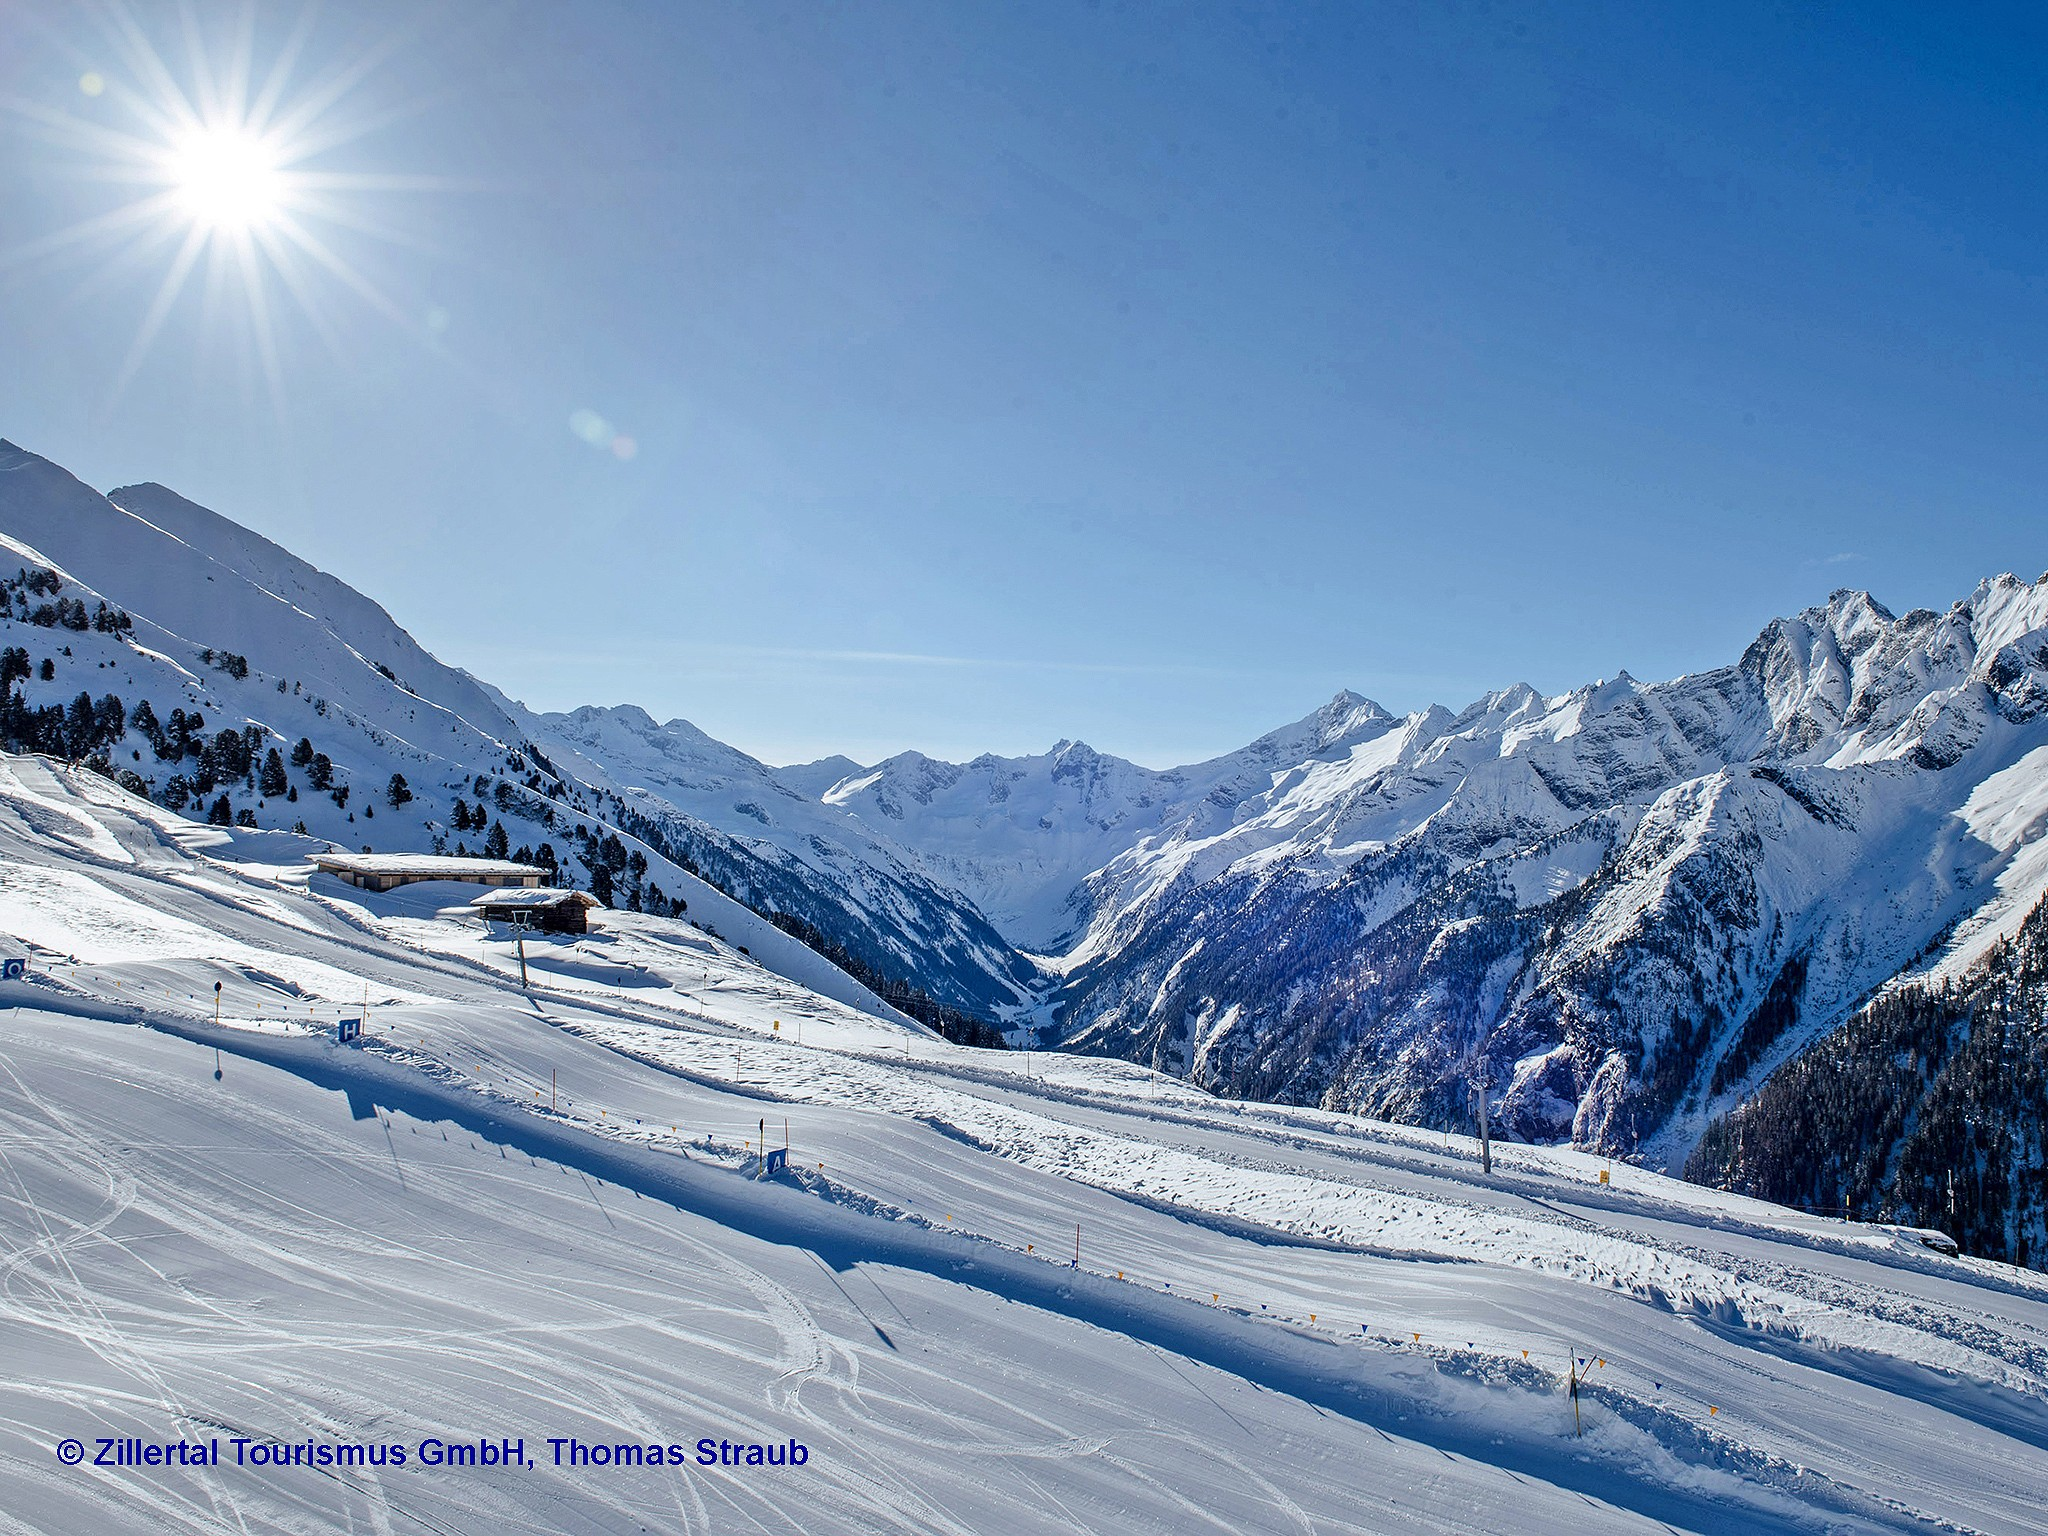 Zillertal-Early-Morning-Sking-Tourismus-Gmbh